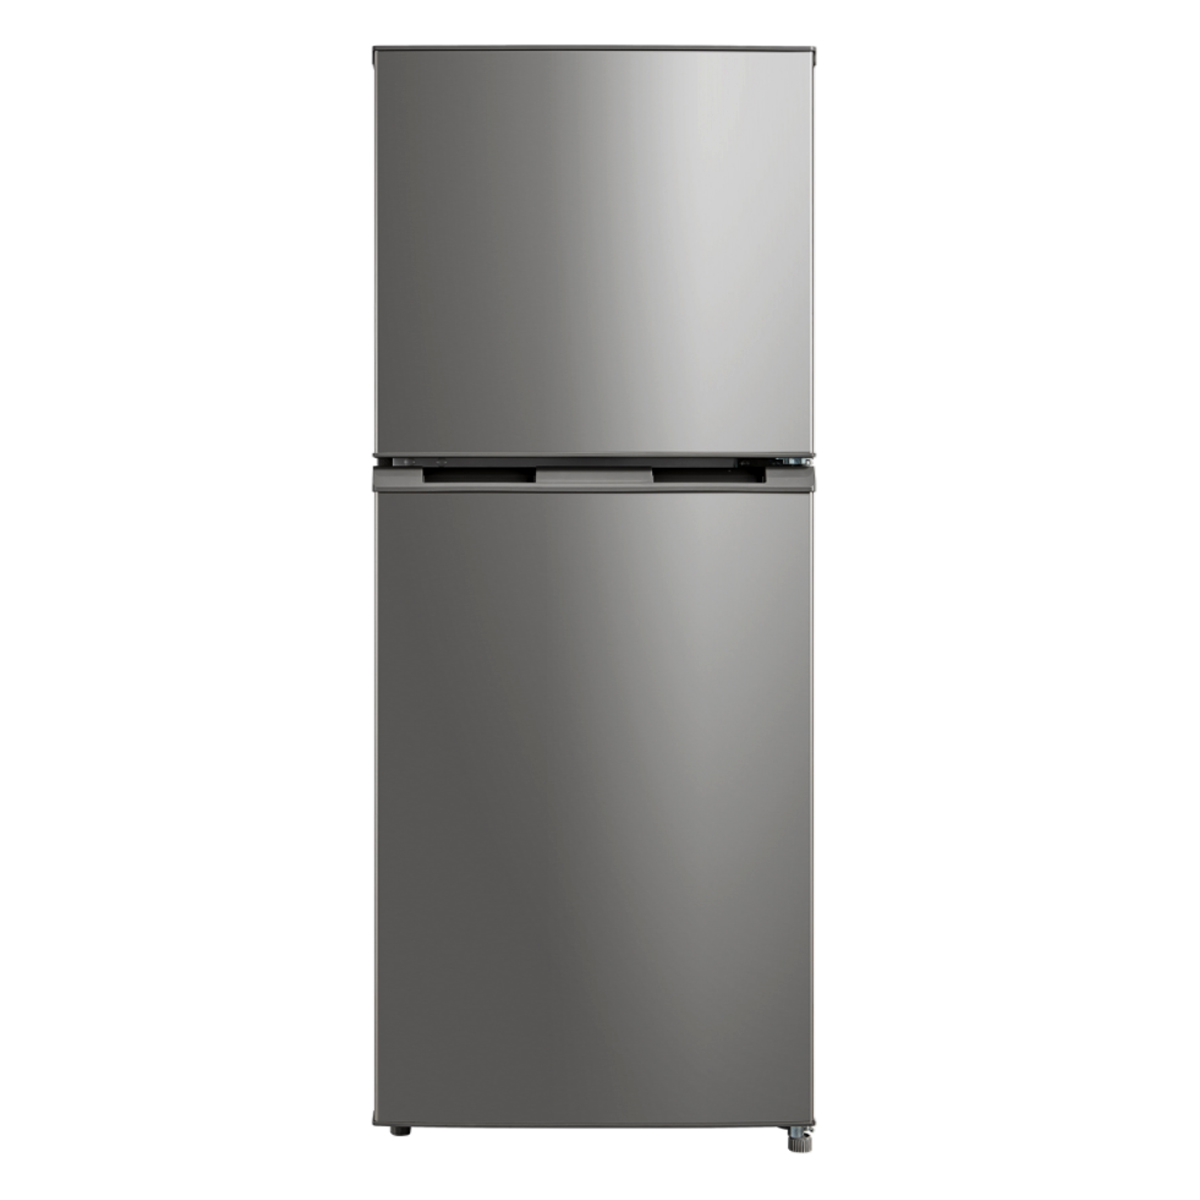 Esatto ETM207X 207L Top Mount Fridge